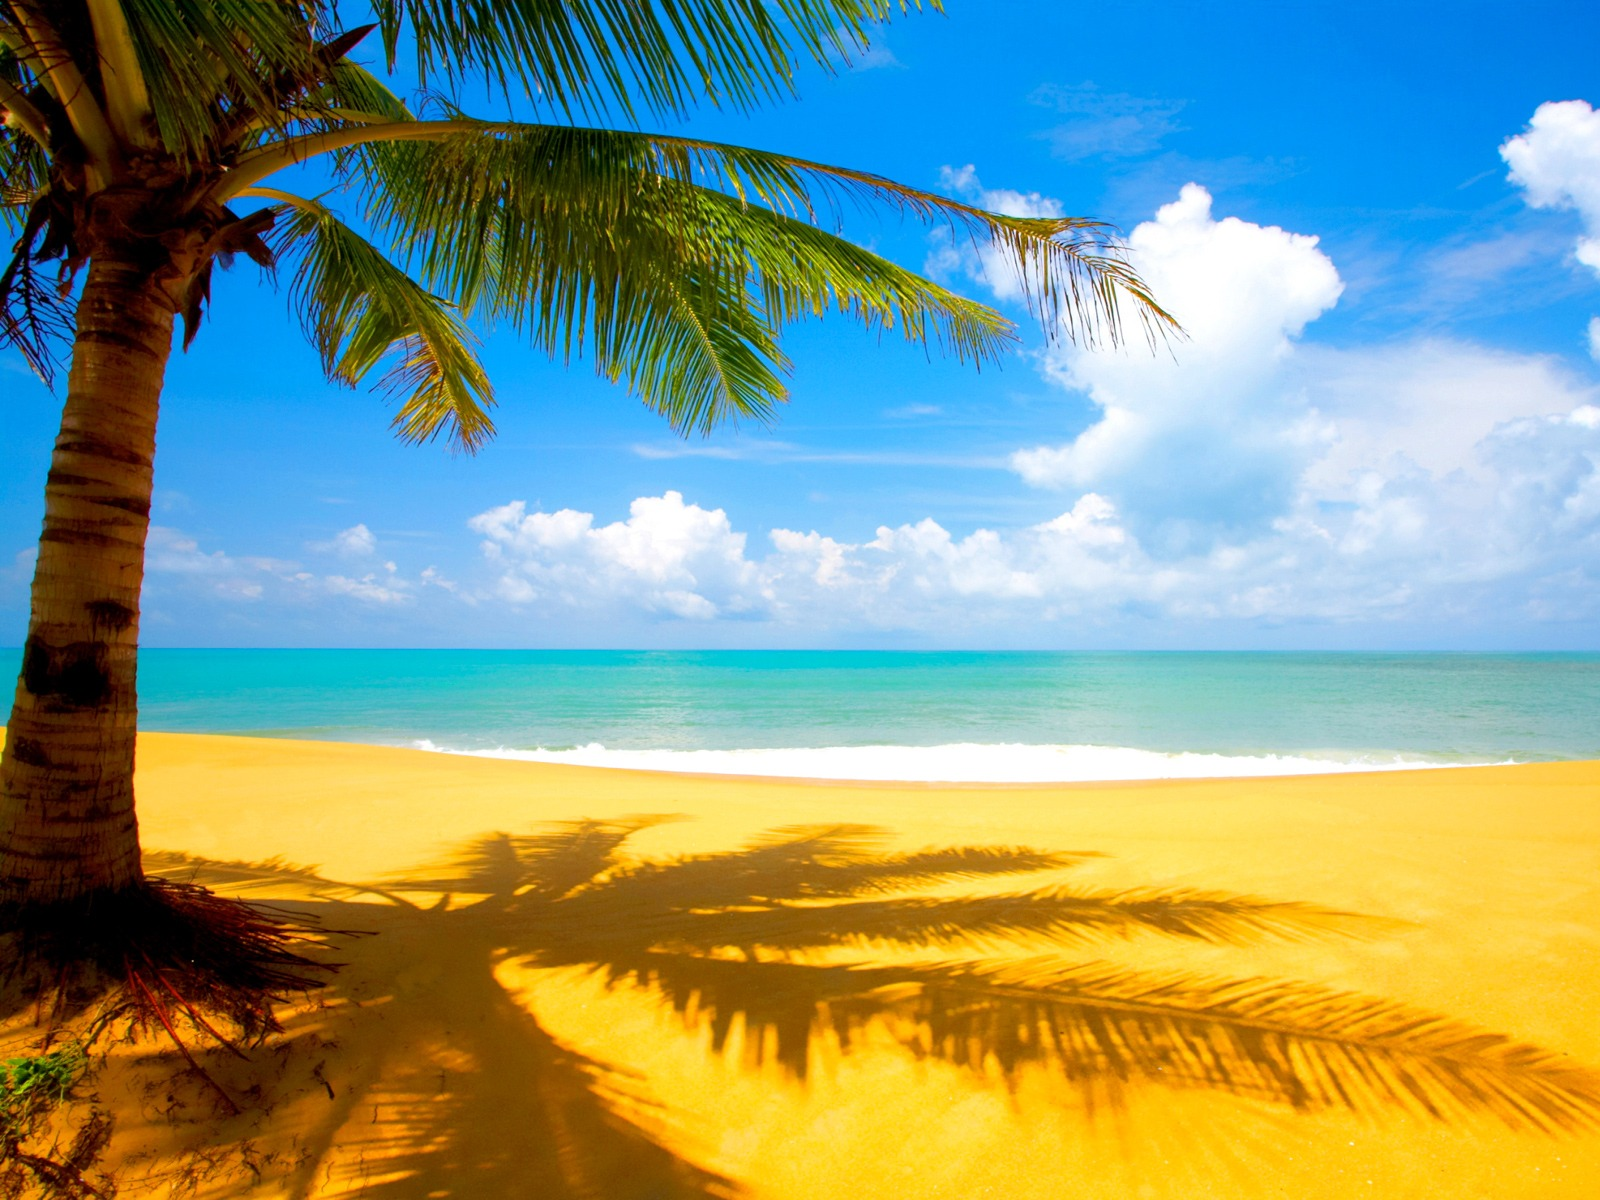 http://beautifulcoolwallpapers.files.wordpress.com/2011/07/beach-wallpaper-03.jpg